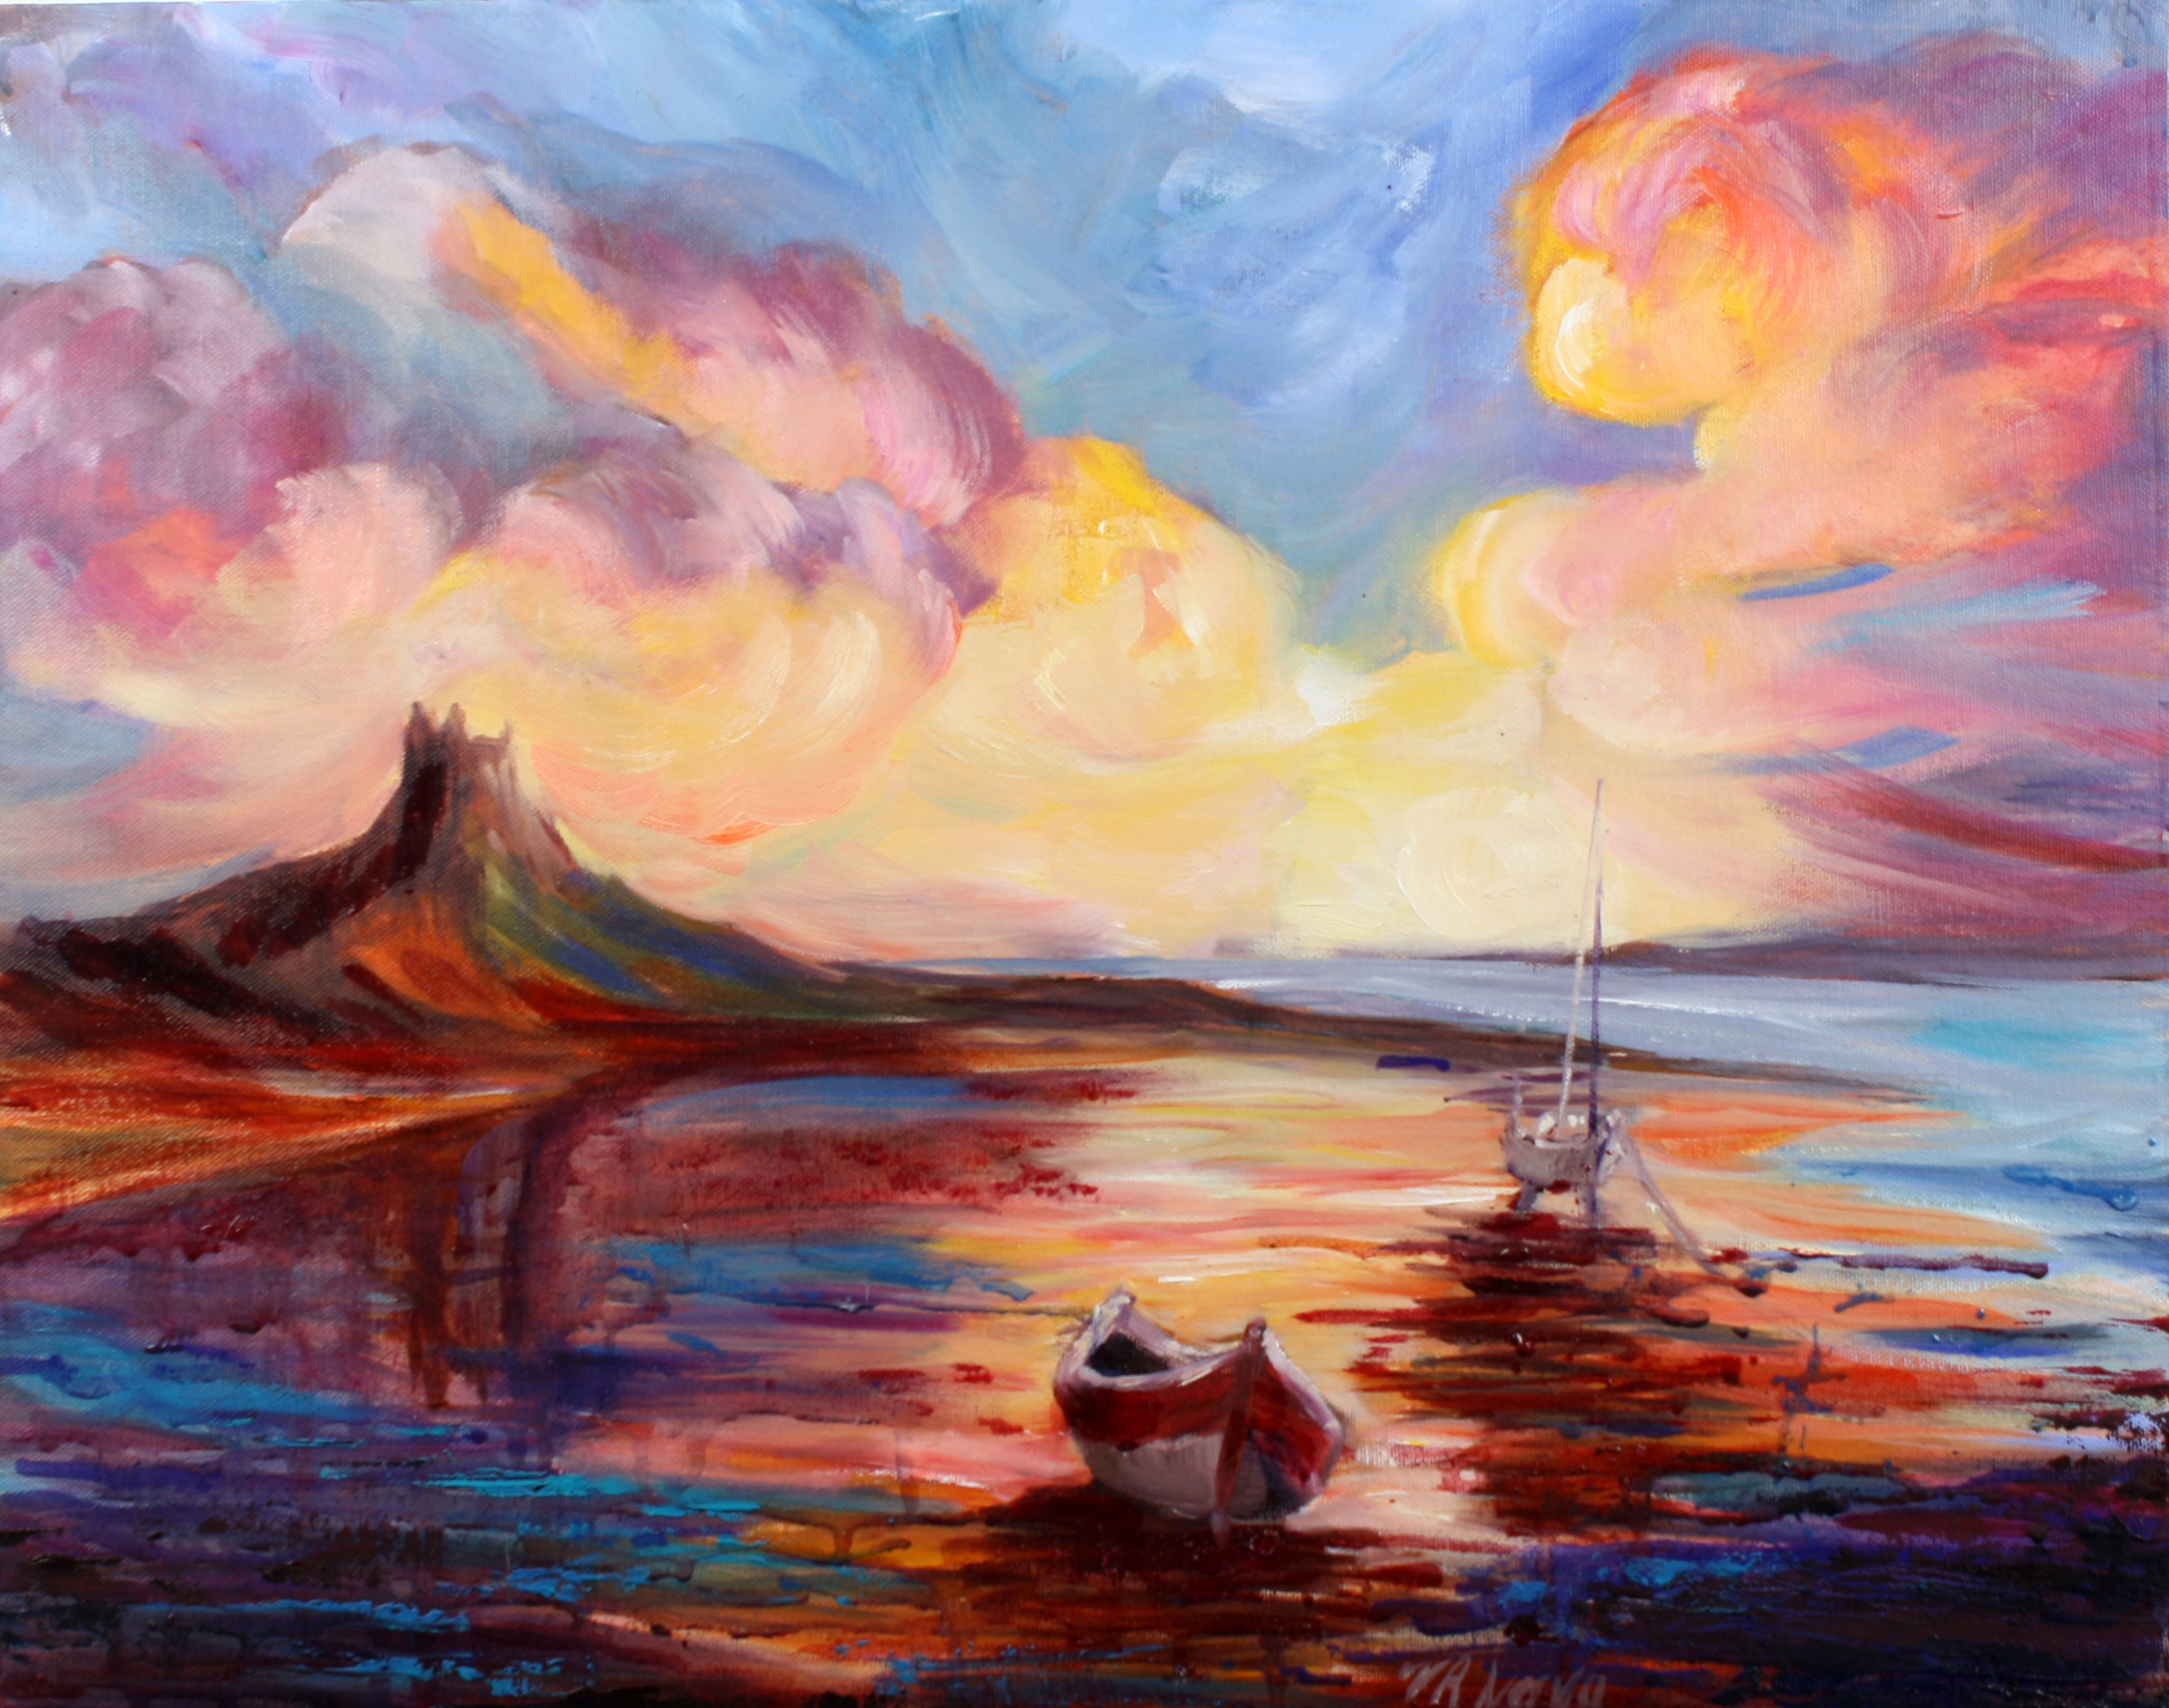 LINDISFARNE SUNSET by Valerie Nerva